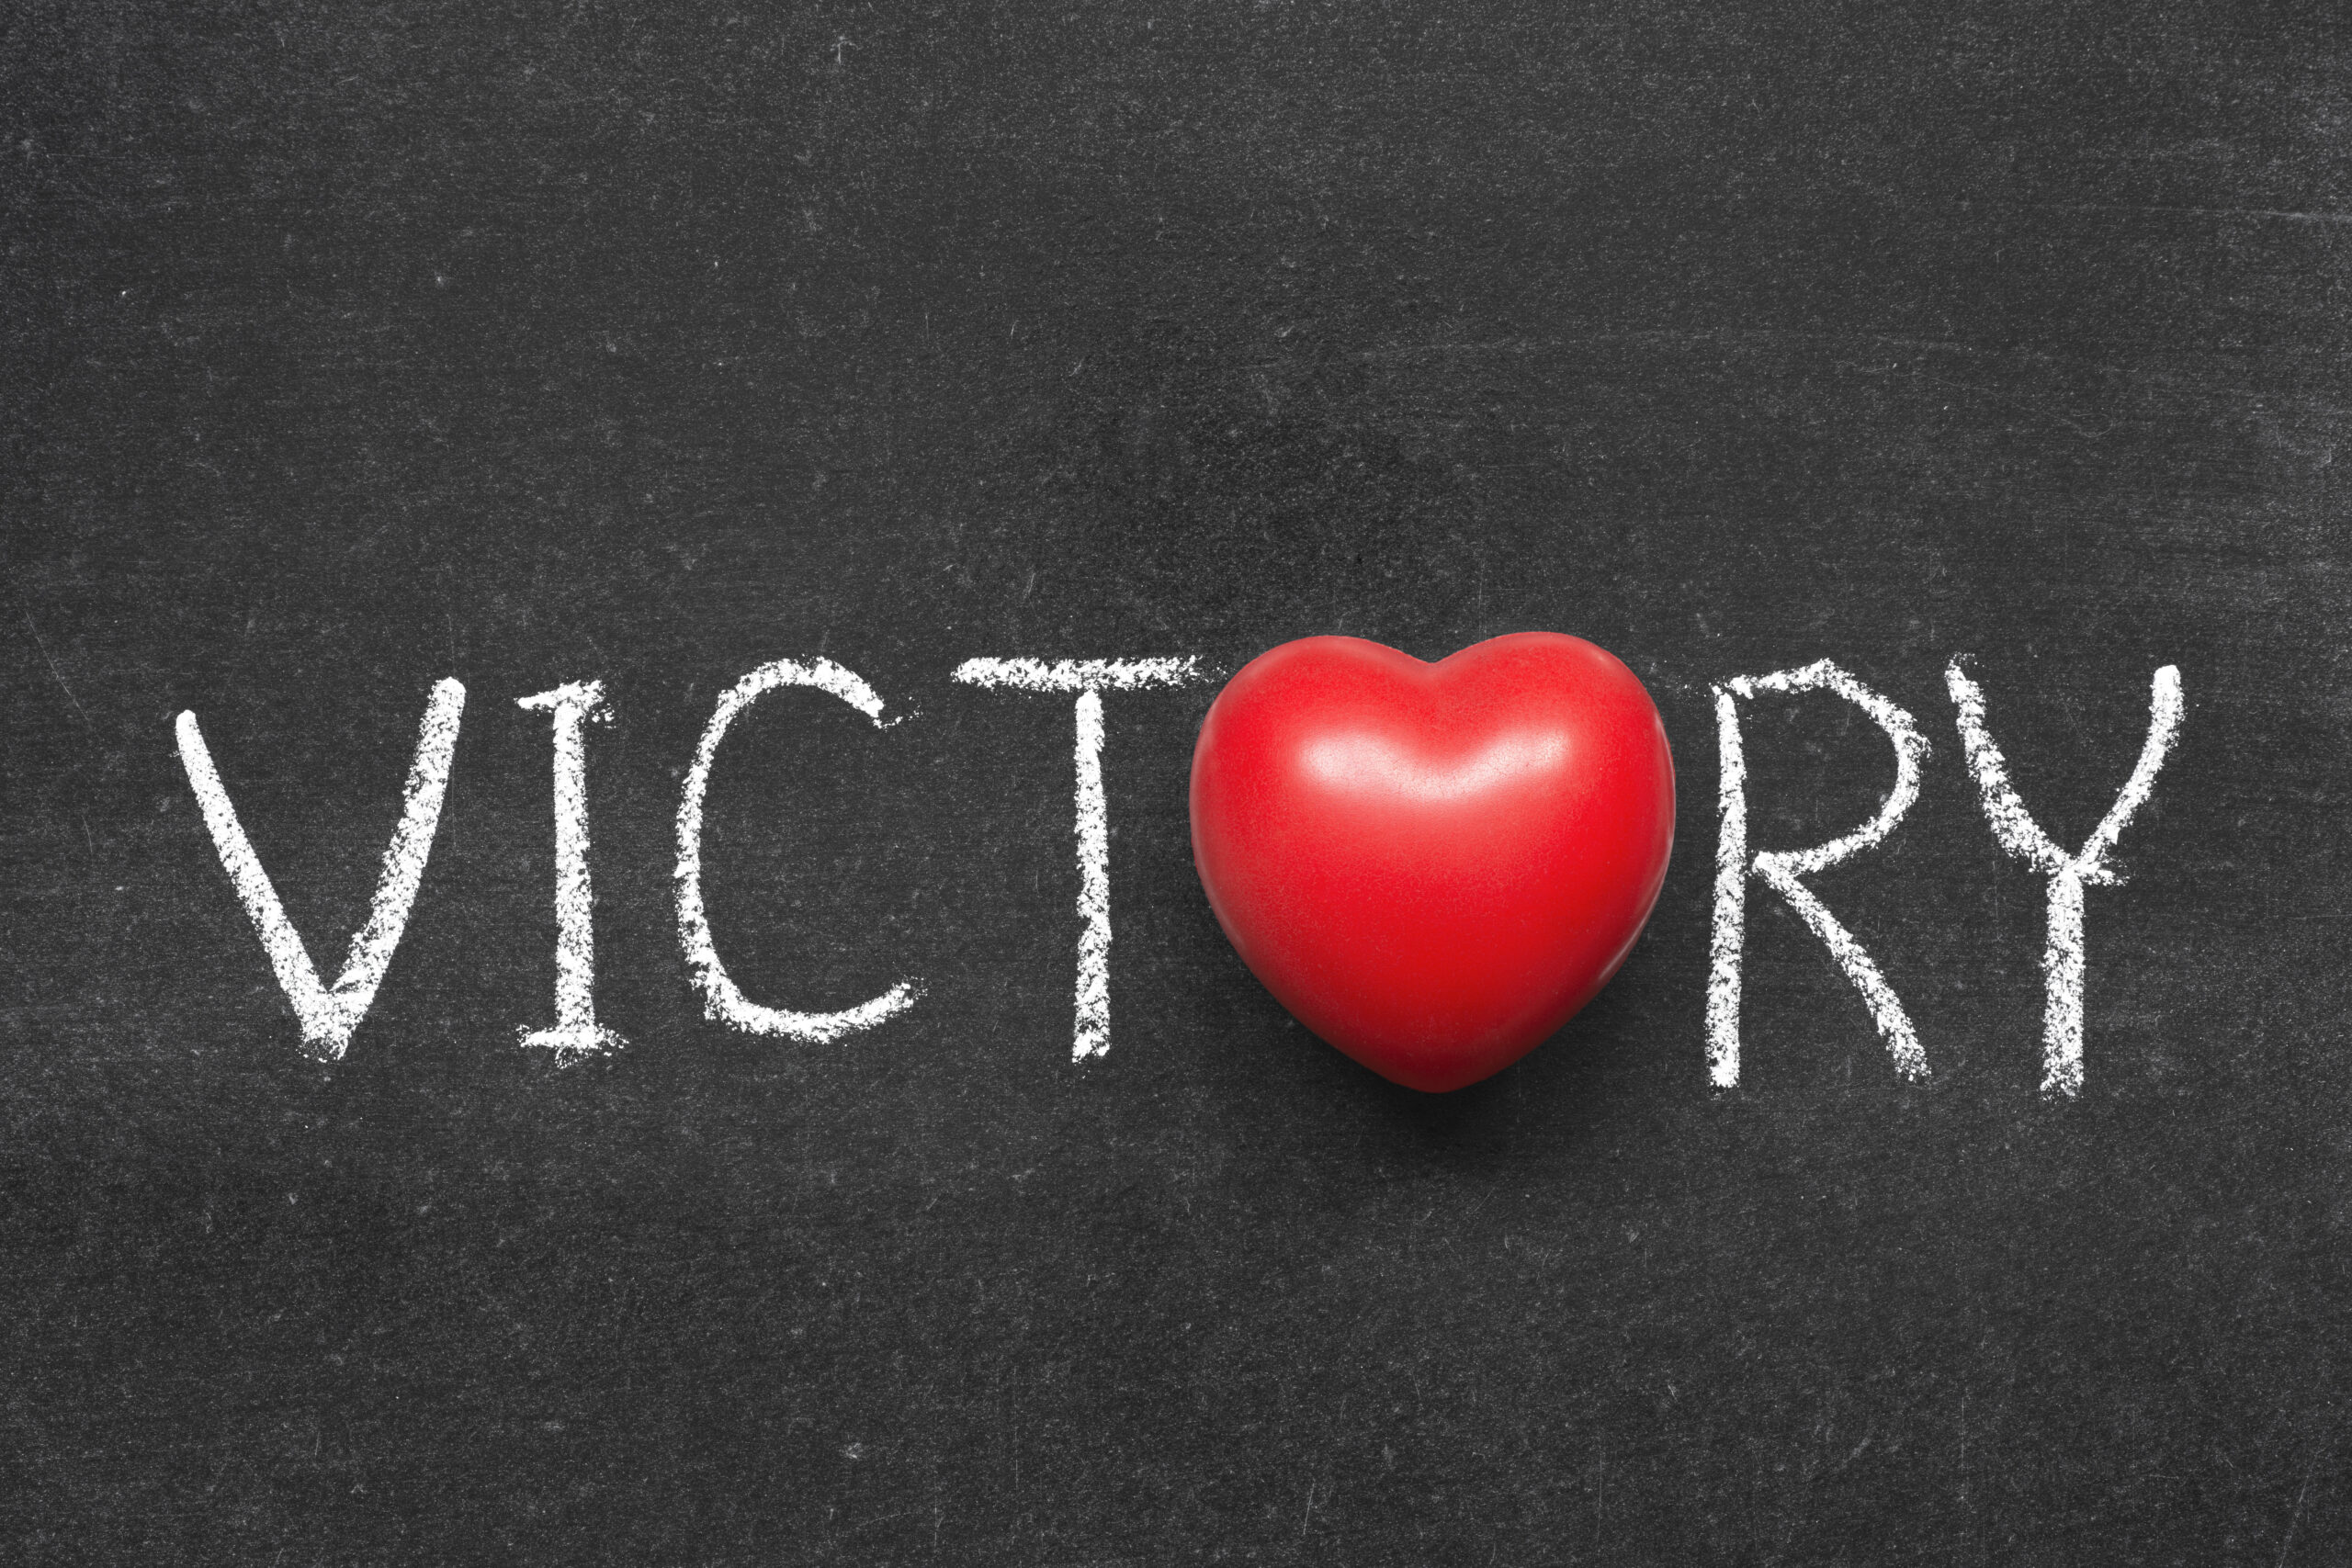 The word victory with a heart as the O